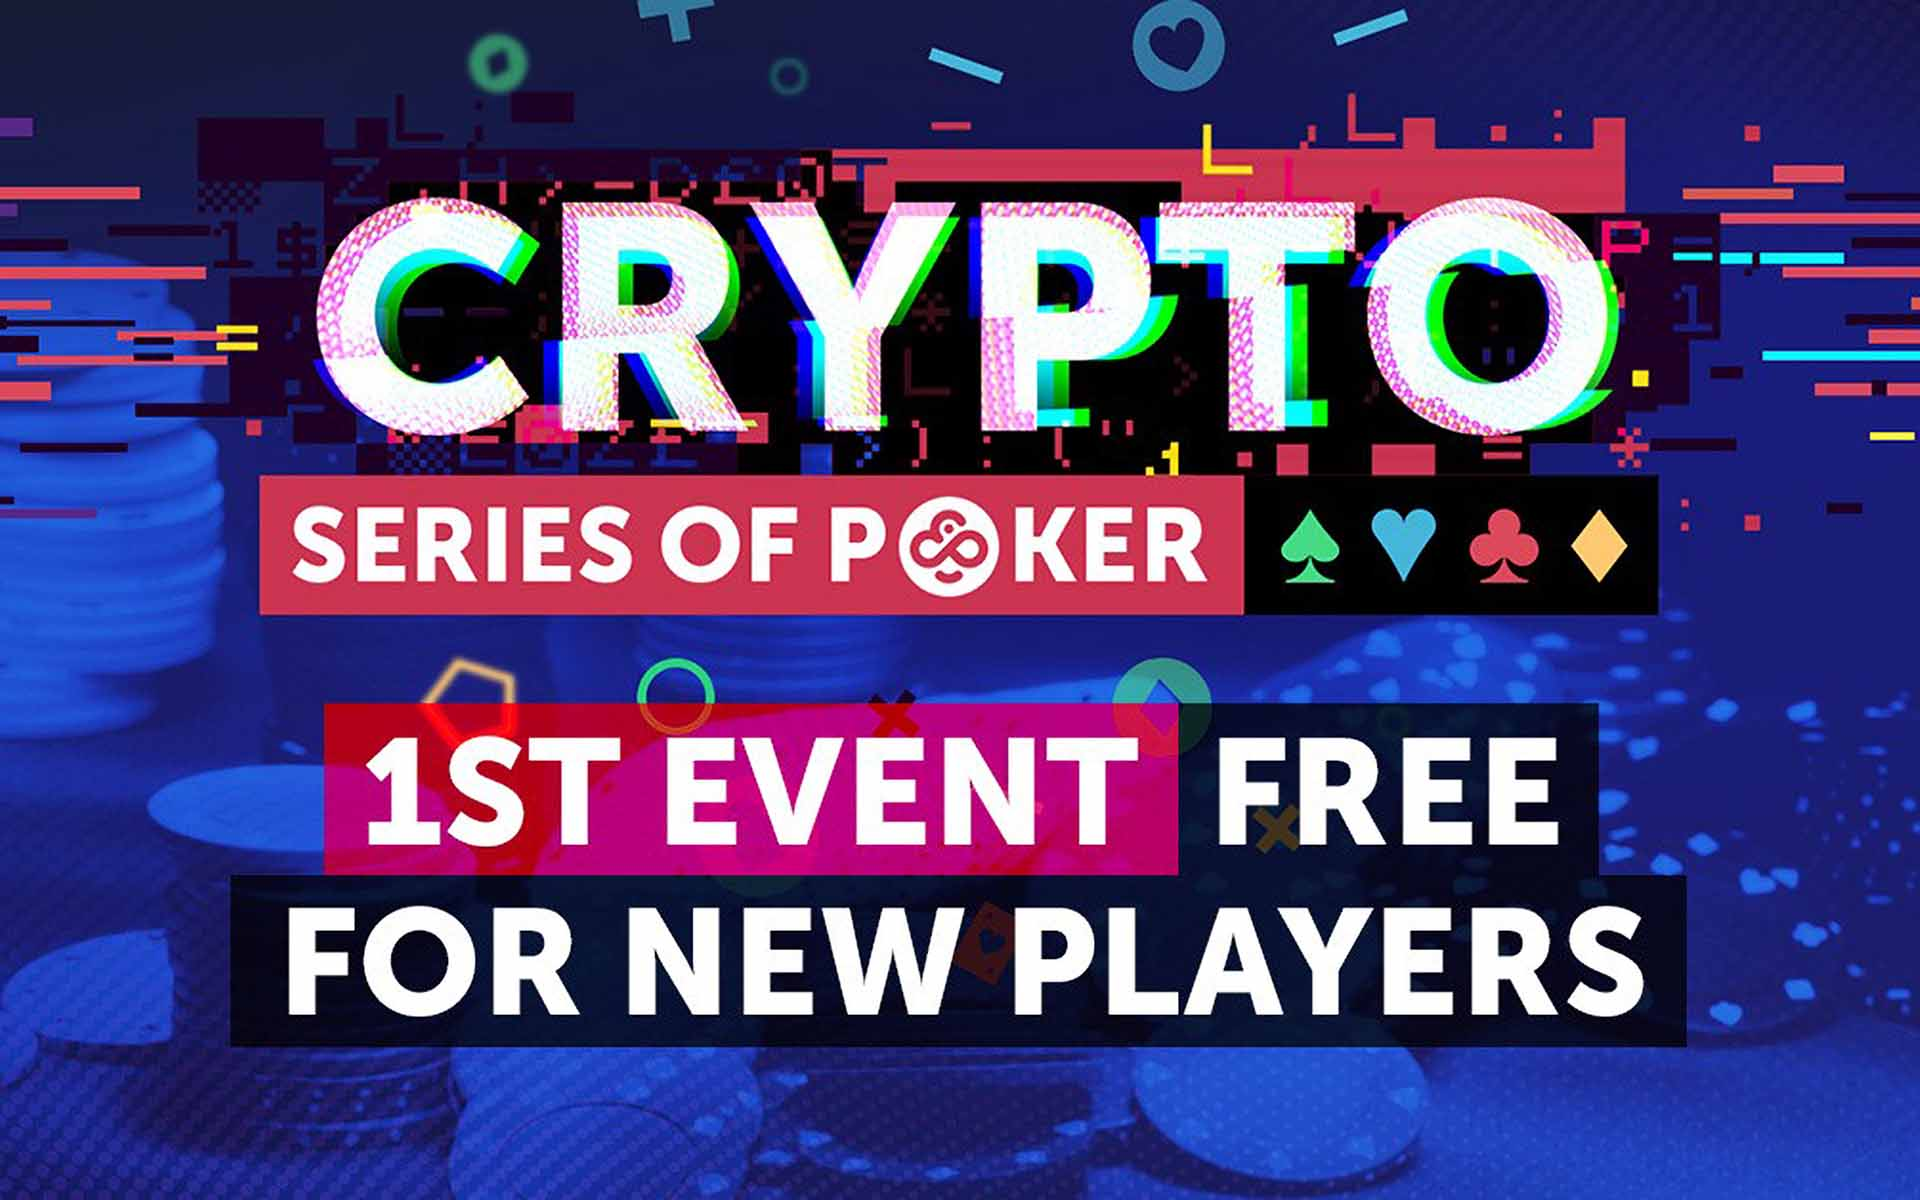 Cryptocurrency Based Online Poker Room CoinPoker Launches the First Crypto Series of Poker (CSOP) with a Prize Pool of 10,000,000 CHP